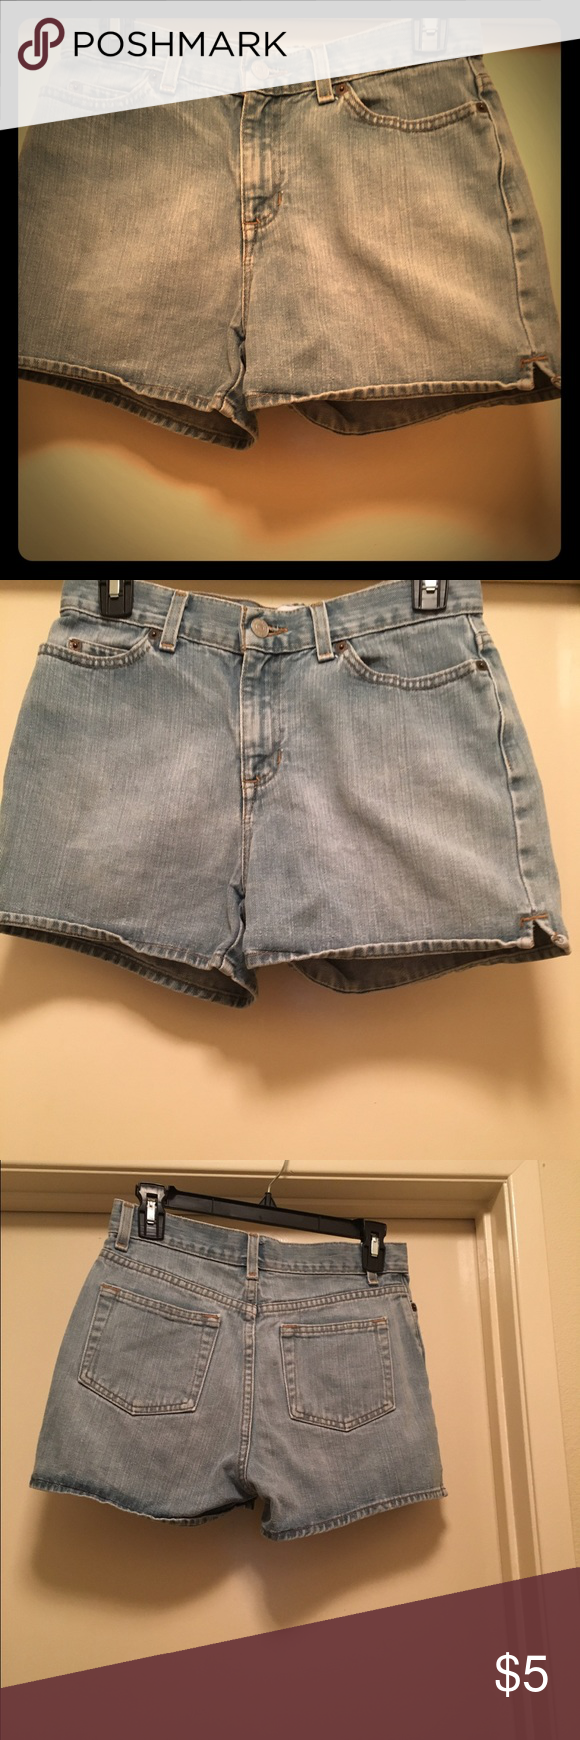 Women's GAP jean shorts. Indigo blue. 🦋 Women's GAP jean shorts. Indigo blue. Size 2 Inseam 3 inches Length from bottom of the shorts to the waist band 11 inches. 🦋 GAP Shorts Jean Shorts